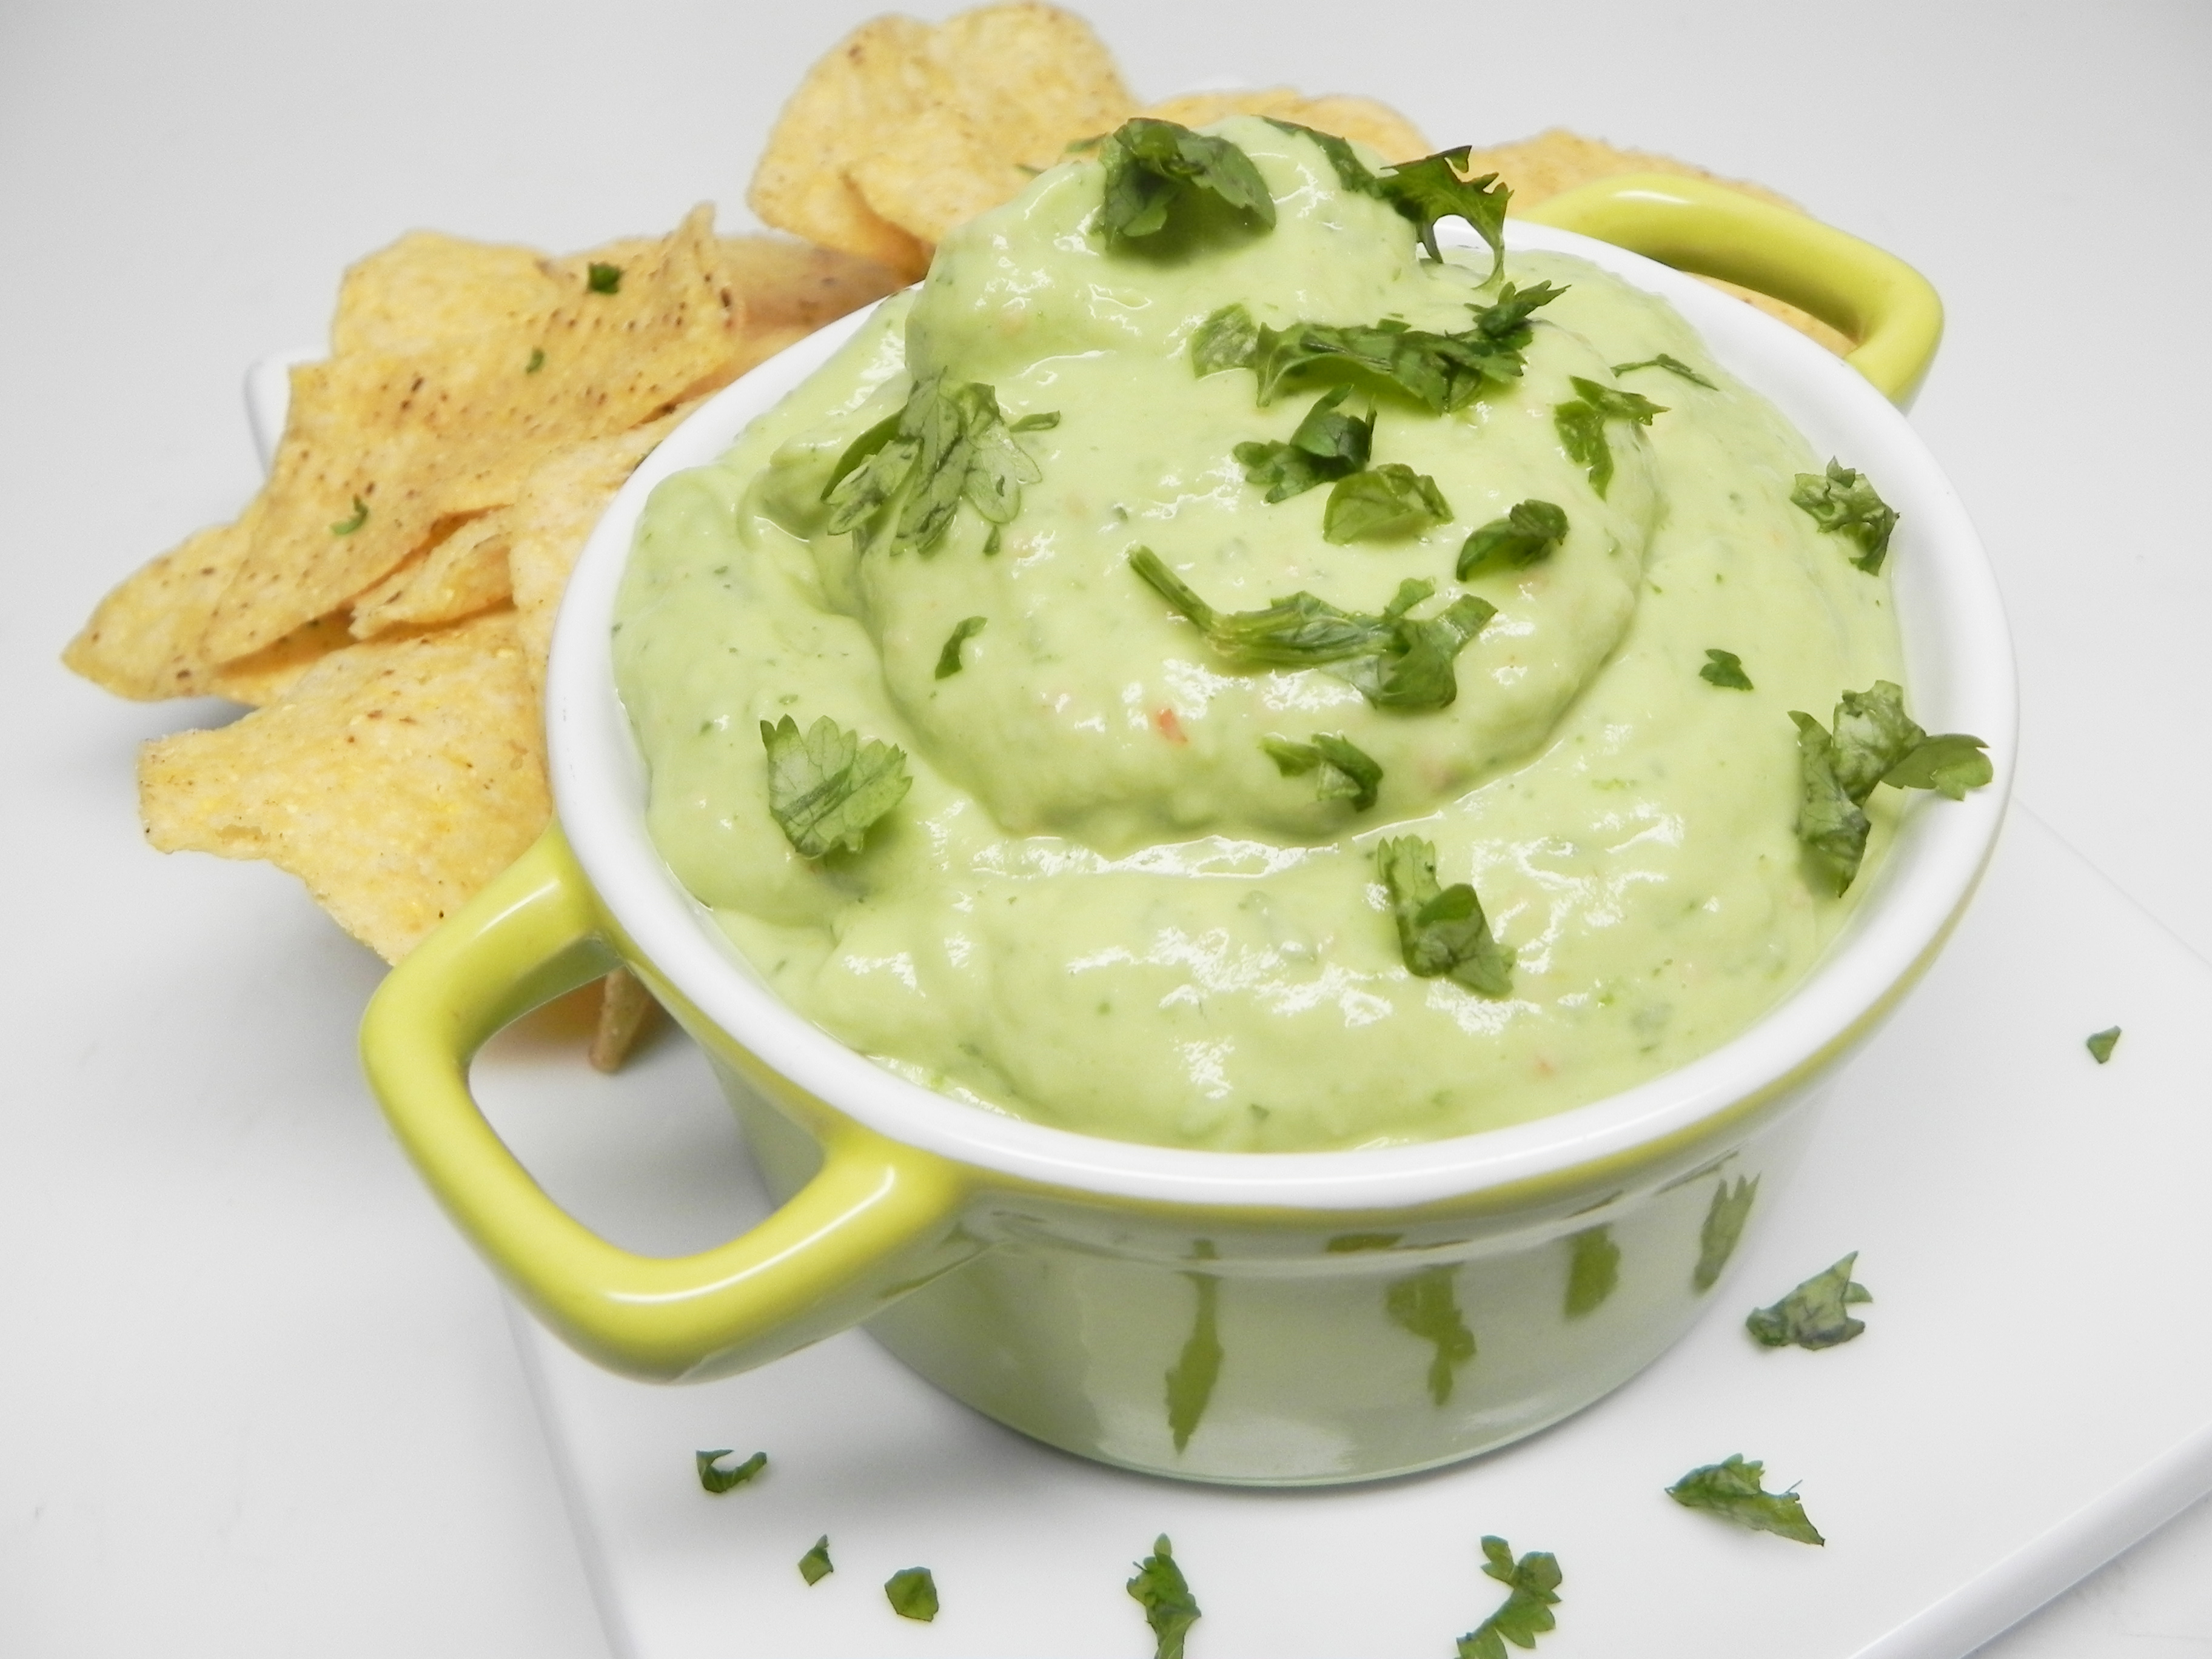 creamy avocado sauce in a green serving dish with tortilla chips